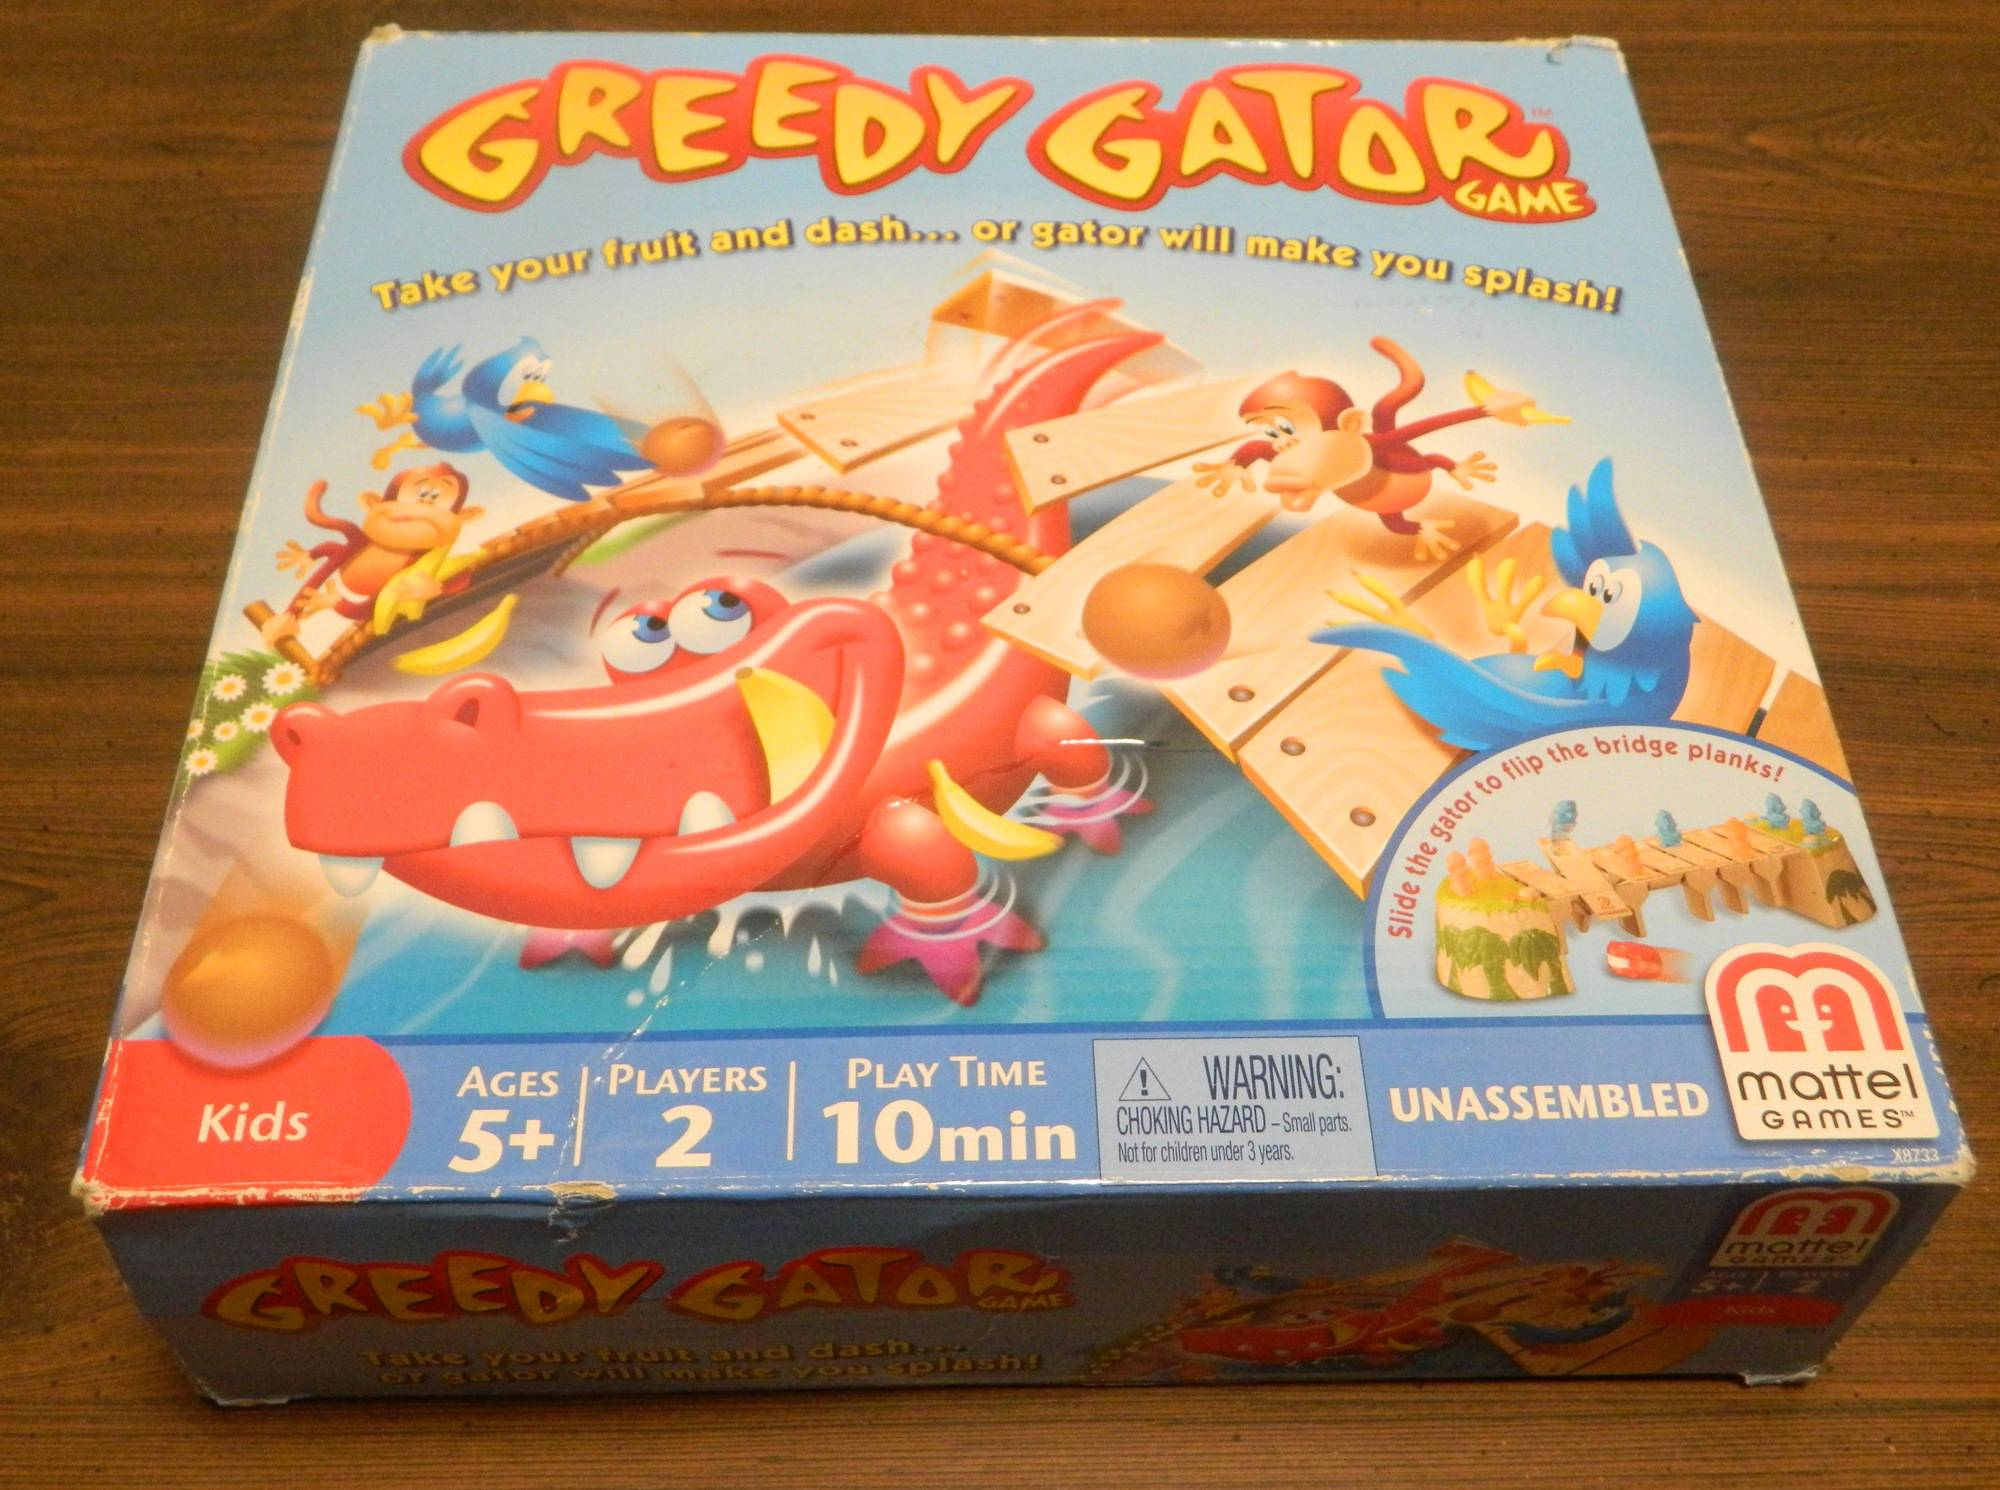 Box for Greedy Gator